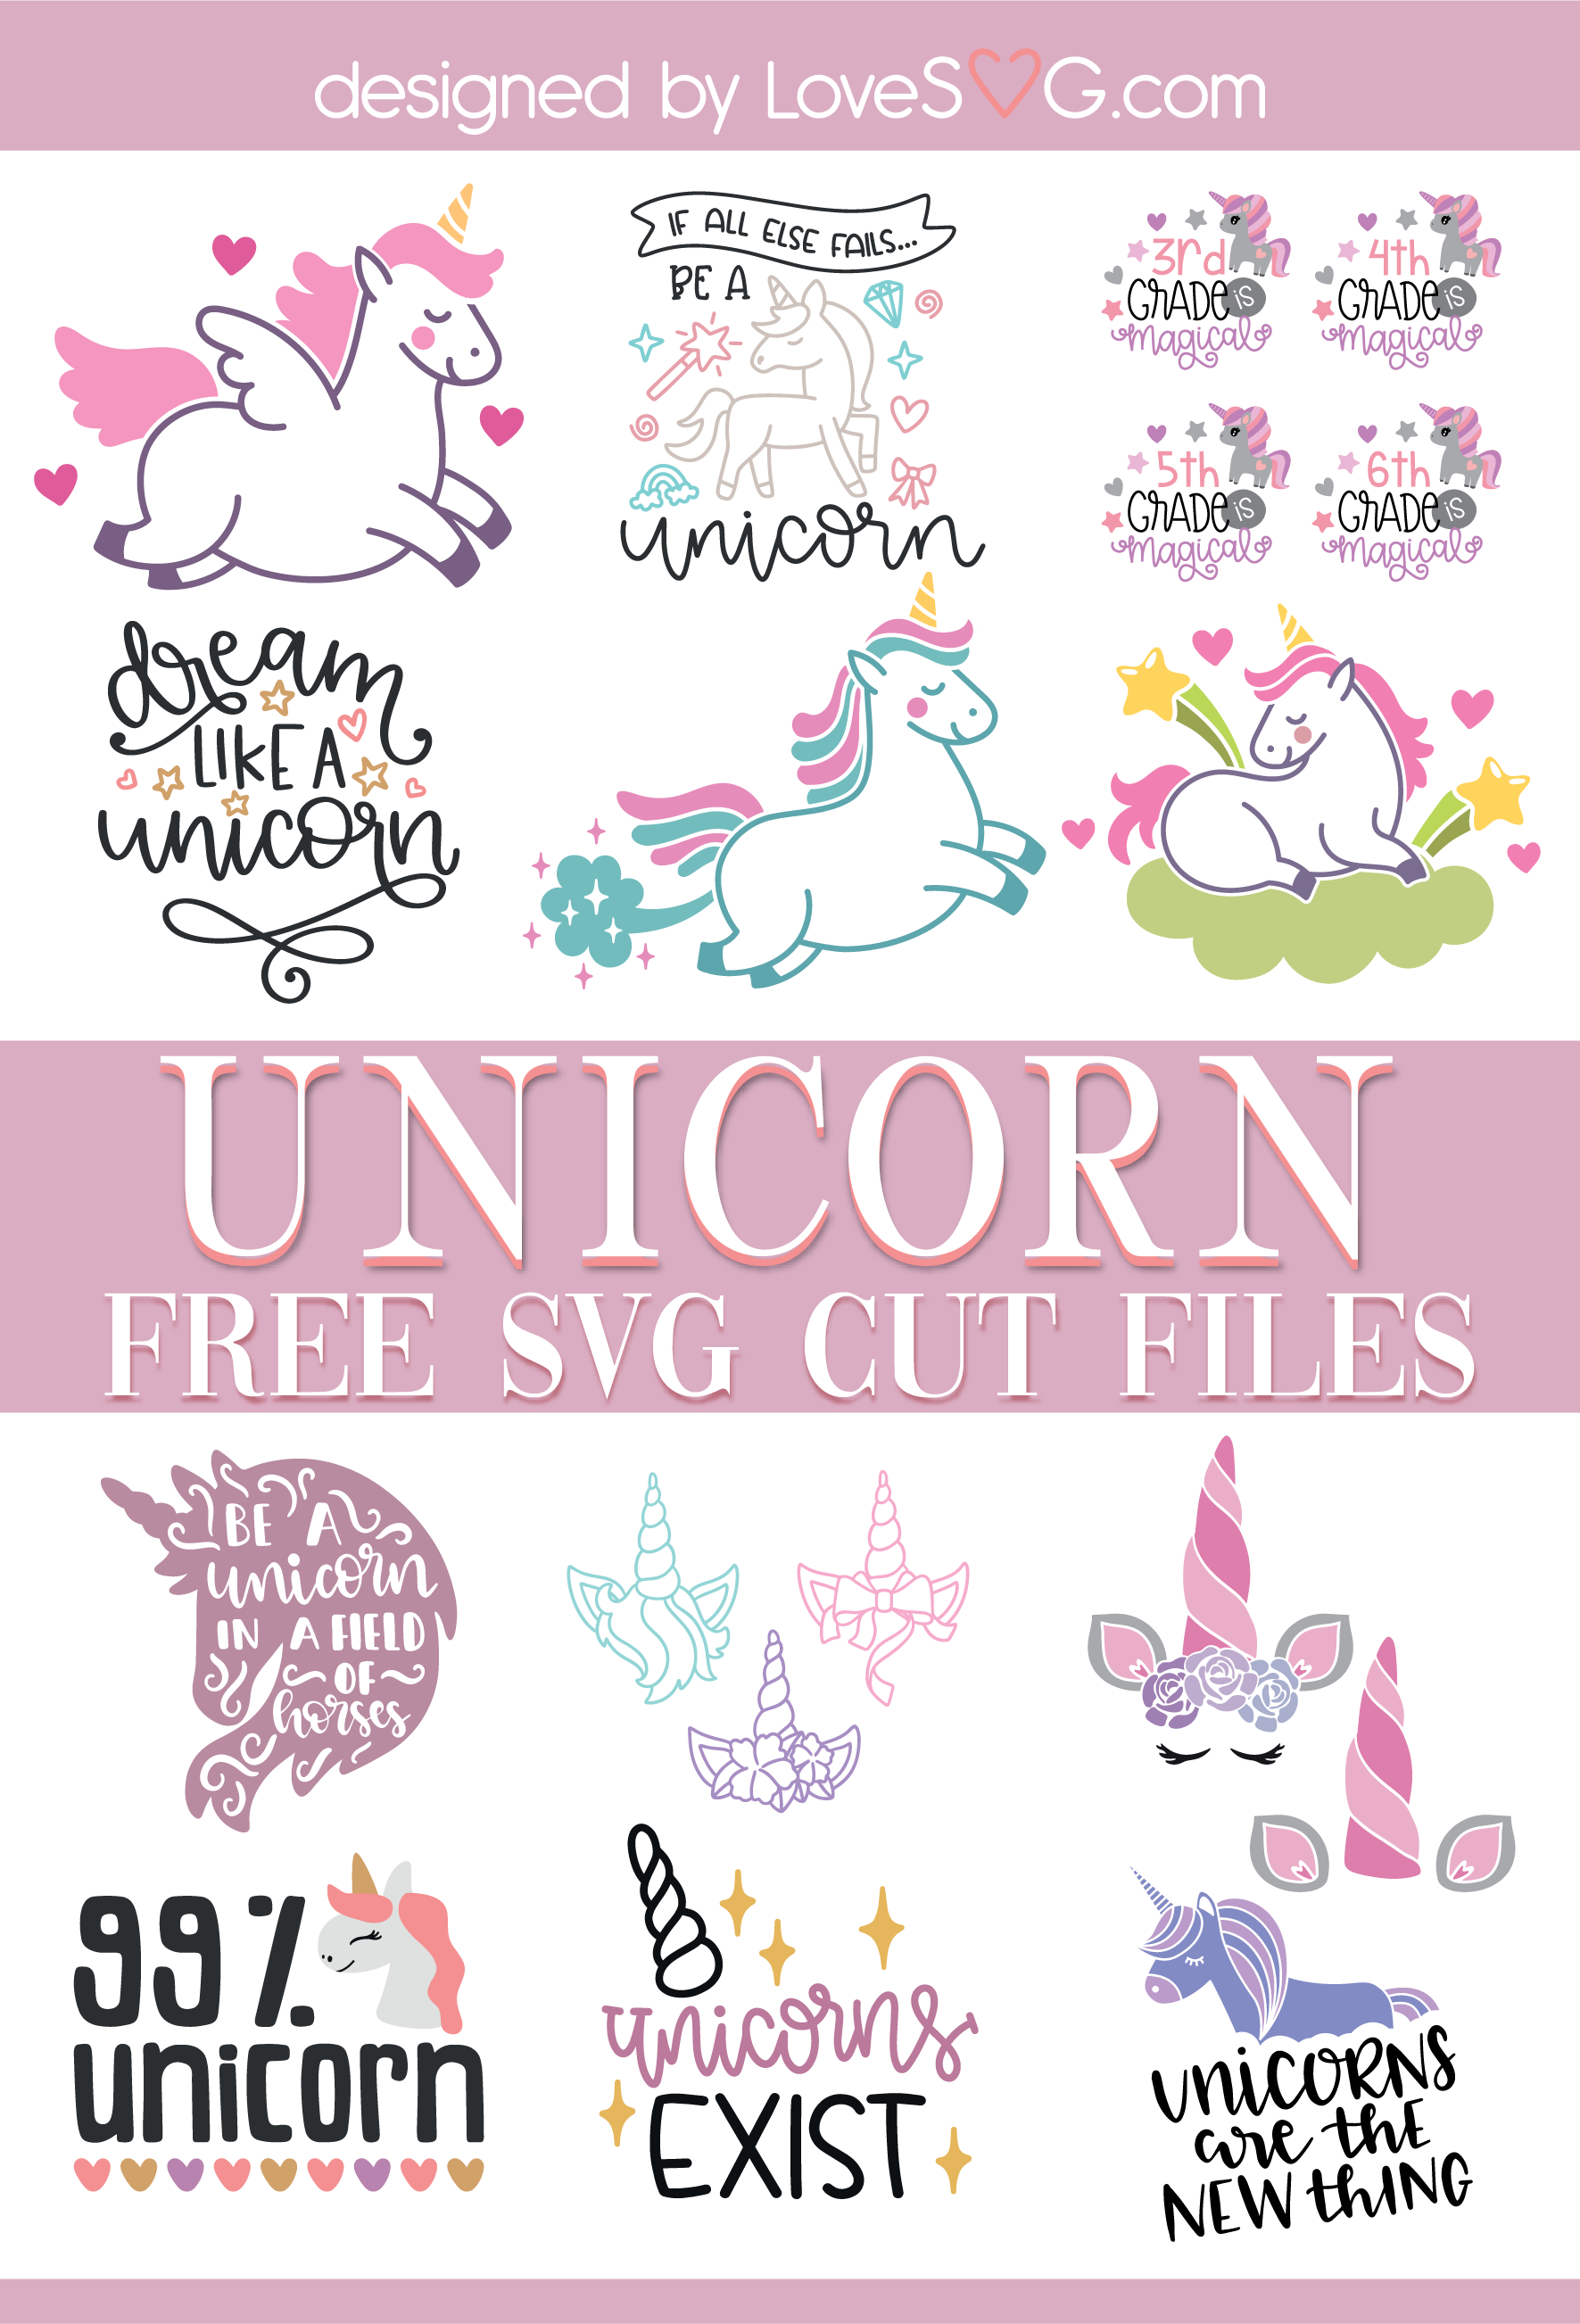 Download Pin on Free Funny Quotes SVG Cut Files | LoveSVG.com